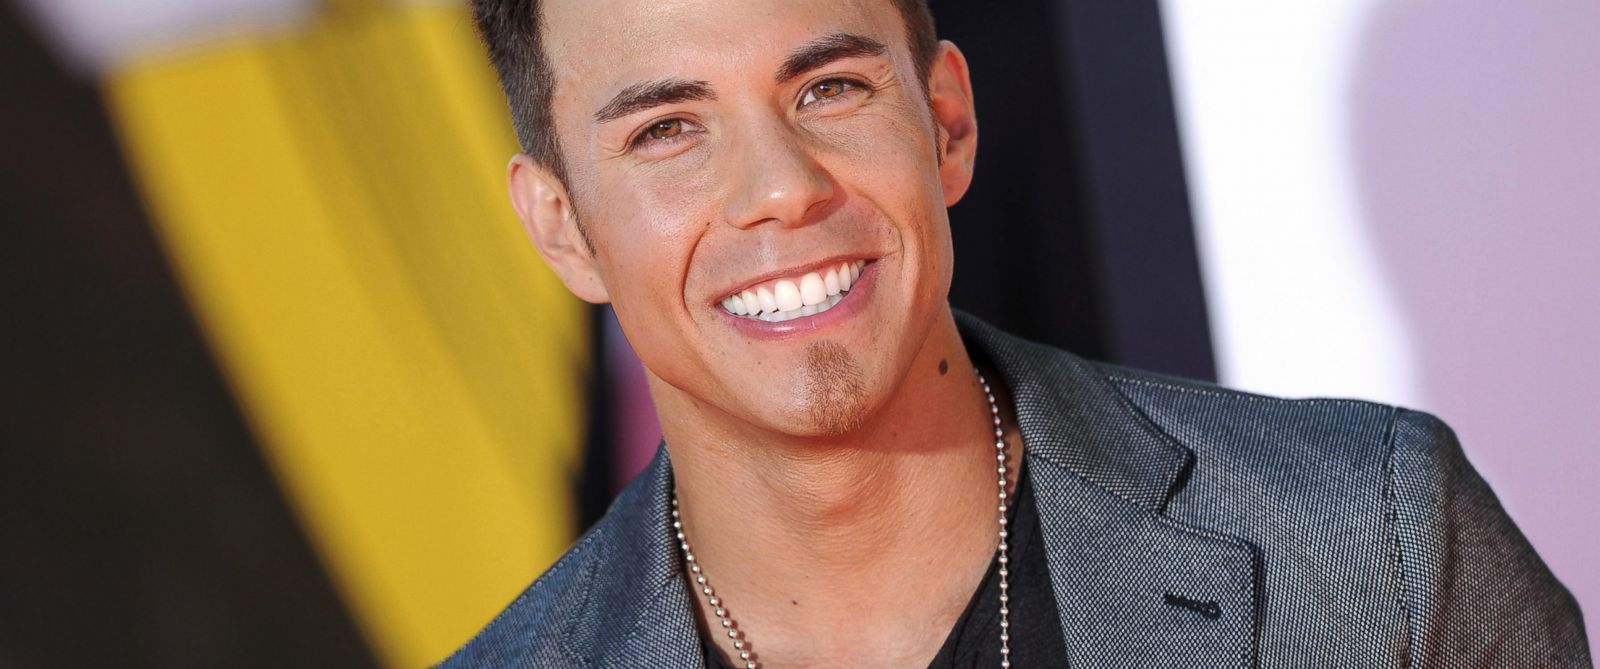 PHOTO: Apolo Ohno attends Nickelodeon Kids Choice Sports Awards 2014 at UCLAs Pauley Pavilion, July 17, 2014, in Los Angeles.